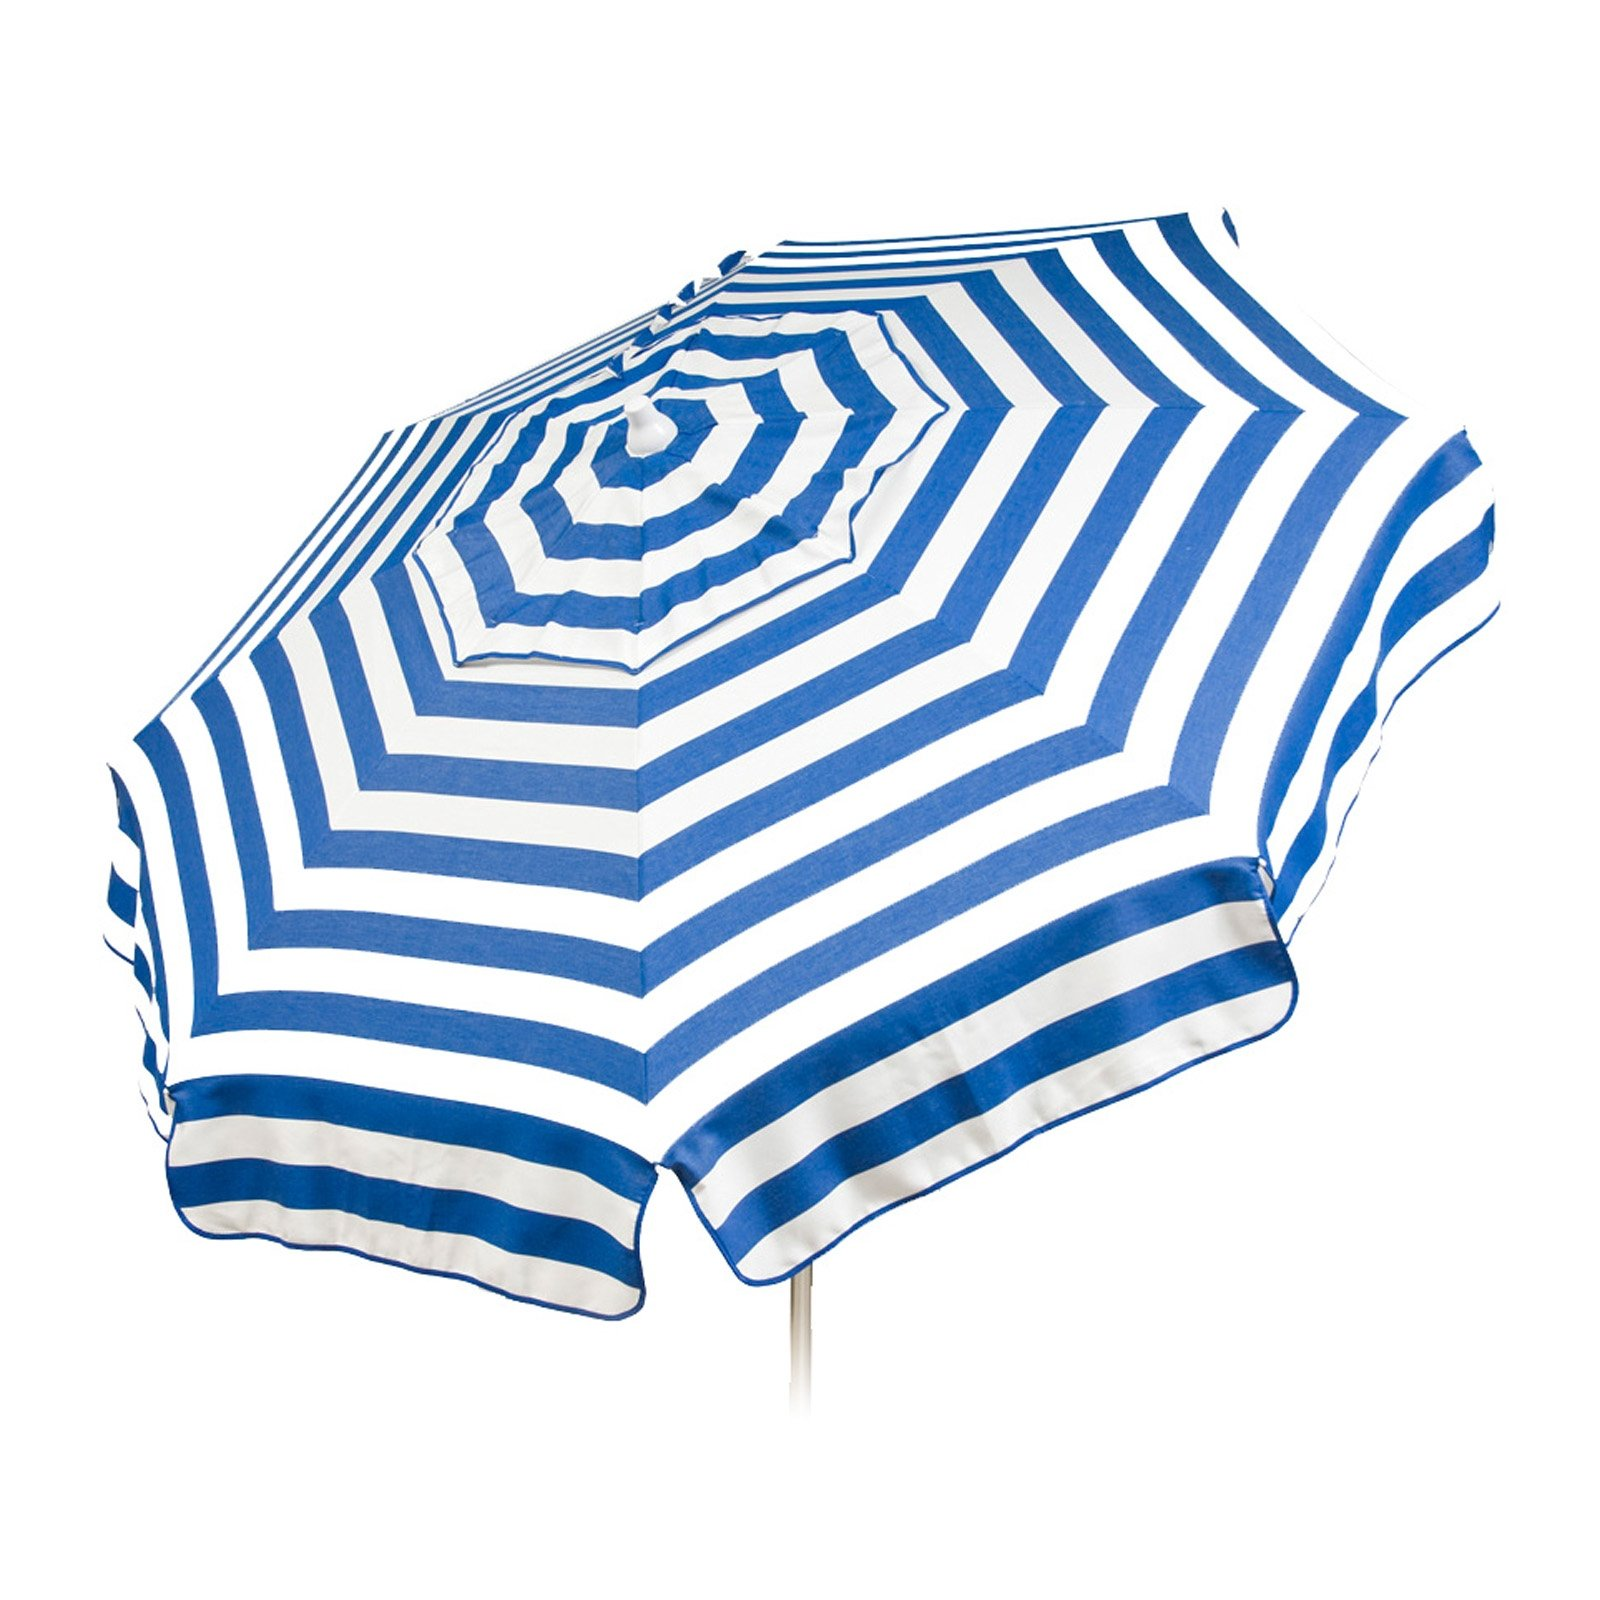 Italian 6 foot Push/Tilt Umbrella Acrylic Stripes Blue and White - Patio Pole